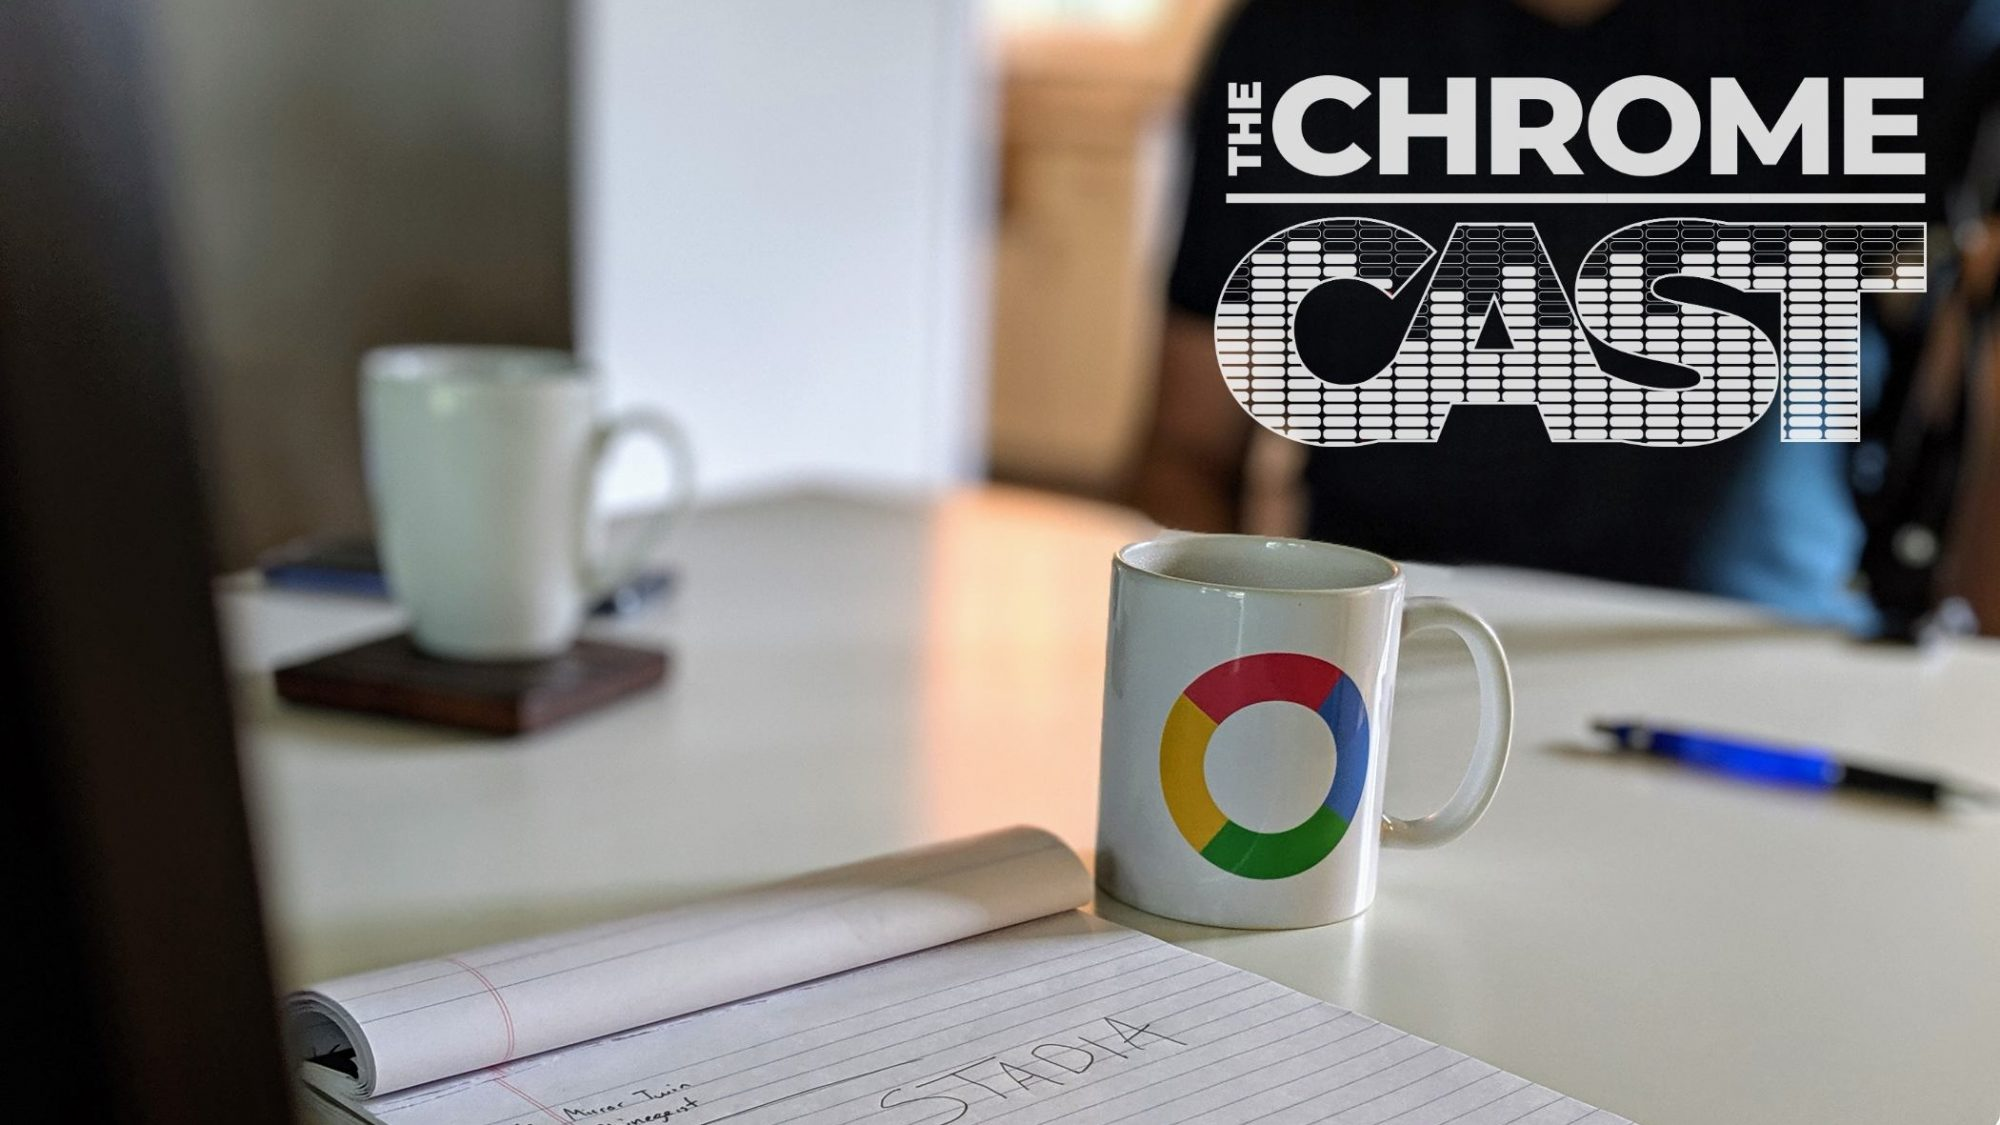 The Chrome Cast 36: One week in November 2019 will reshape the way we stream media